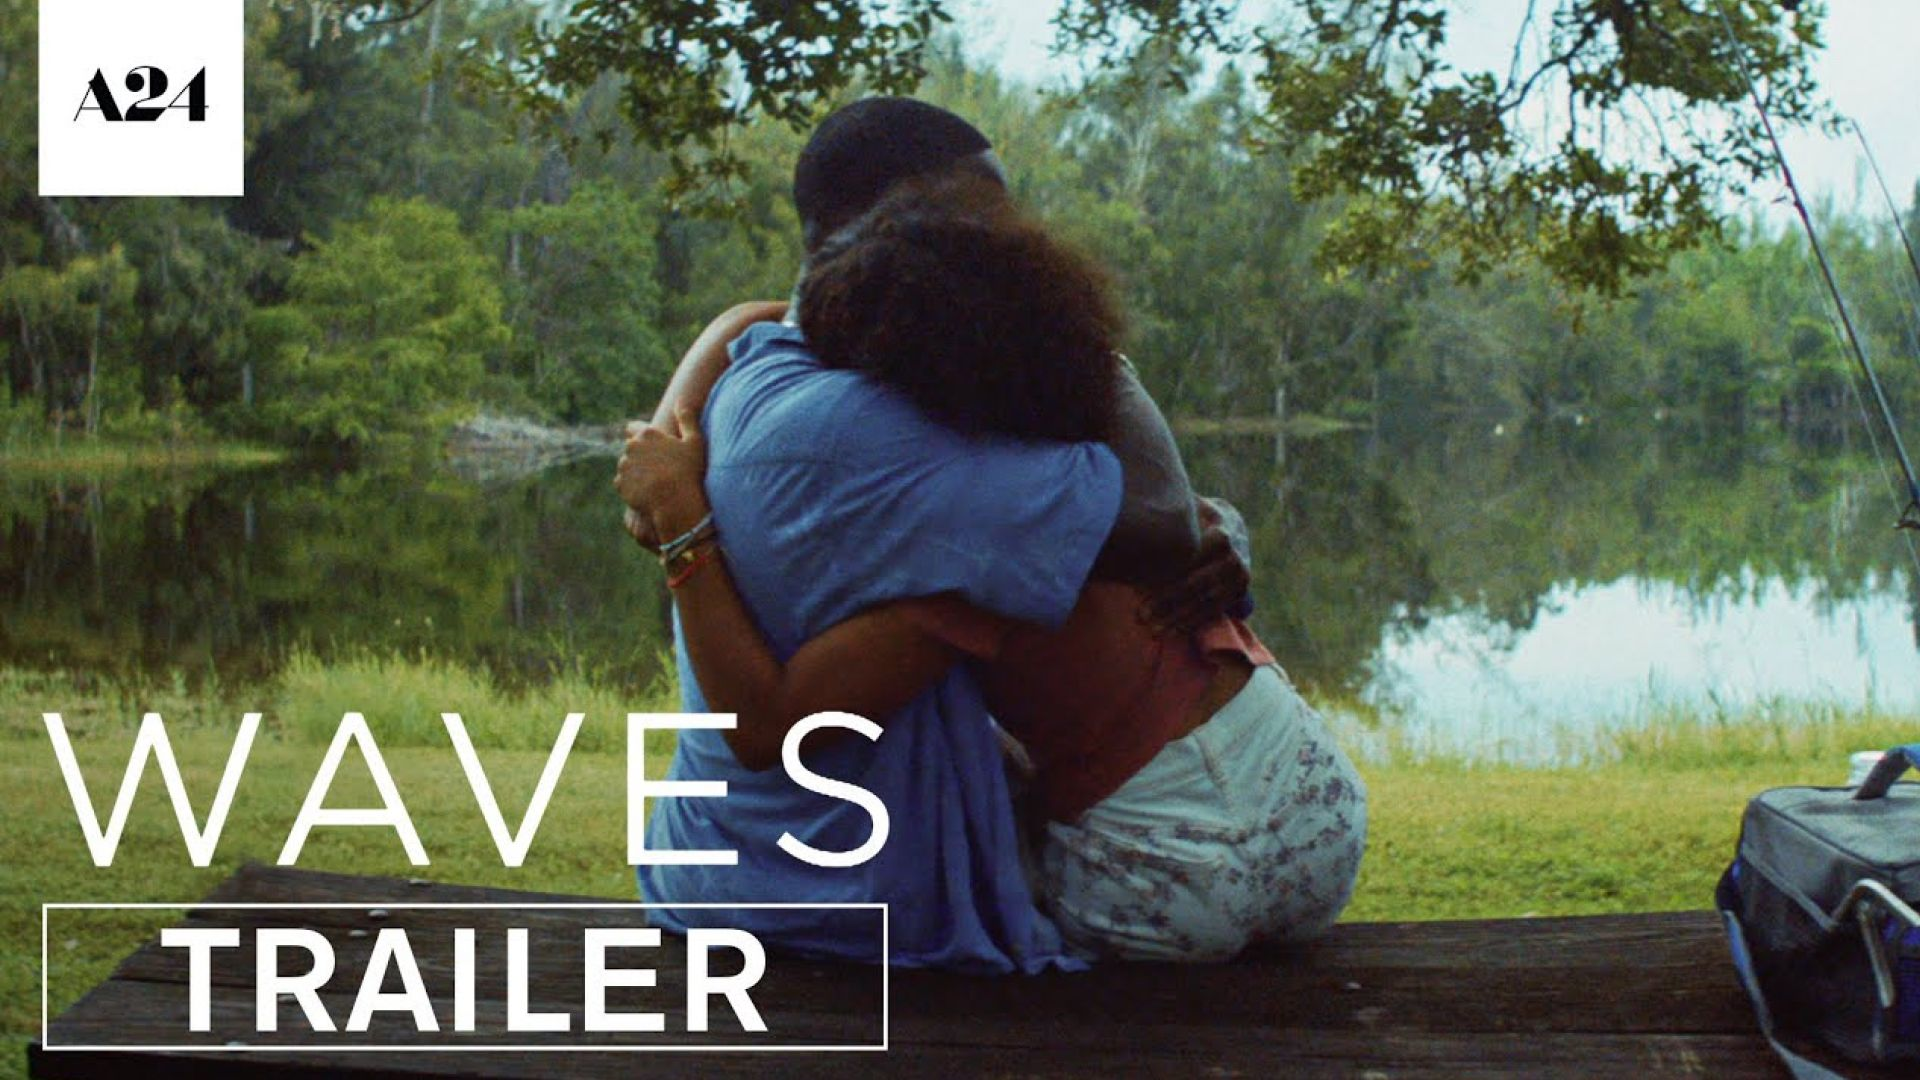 'Waves' trailer